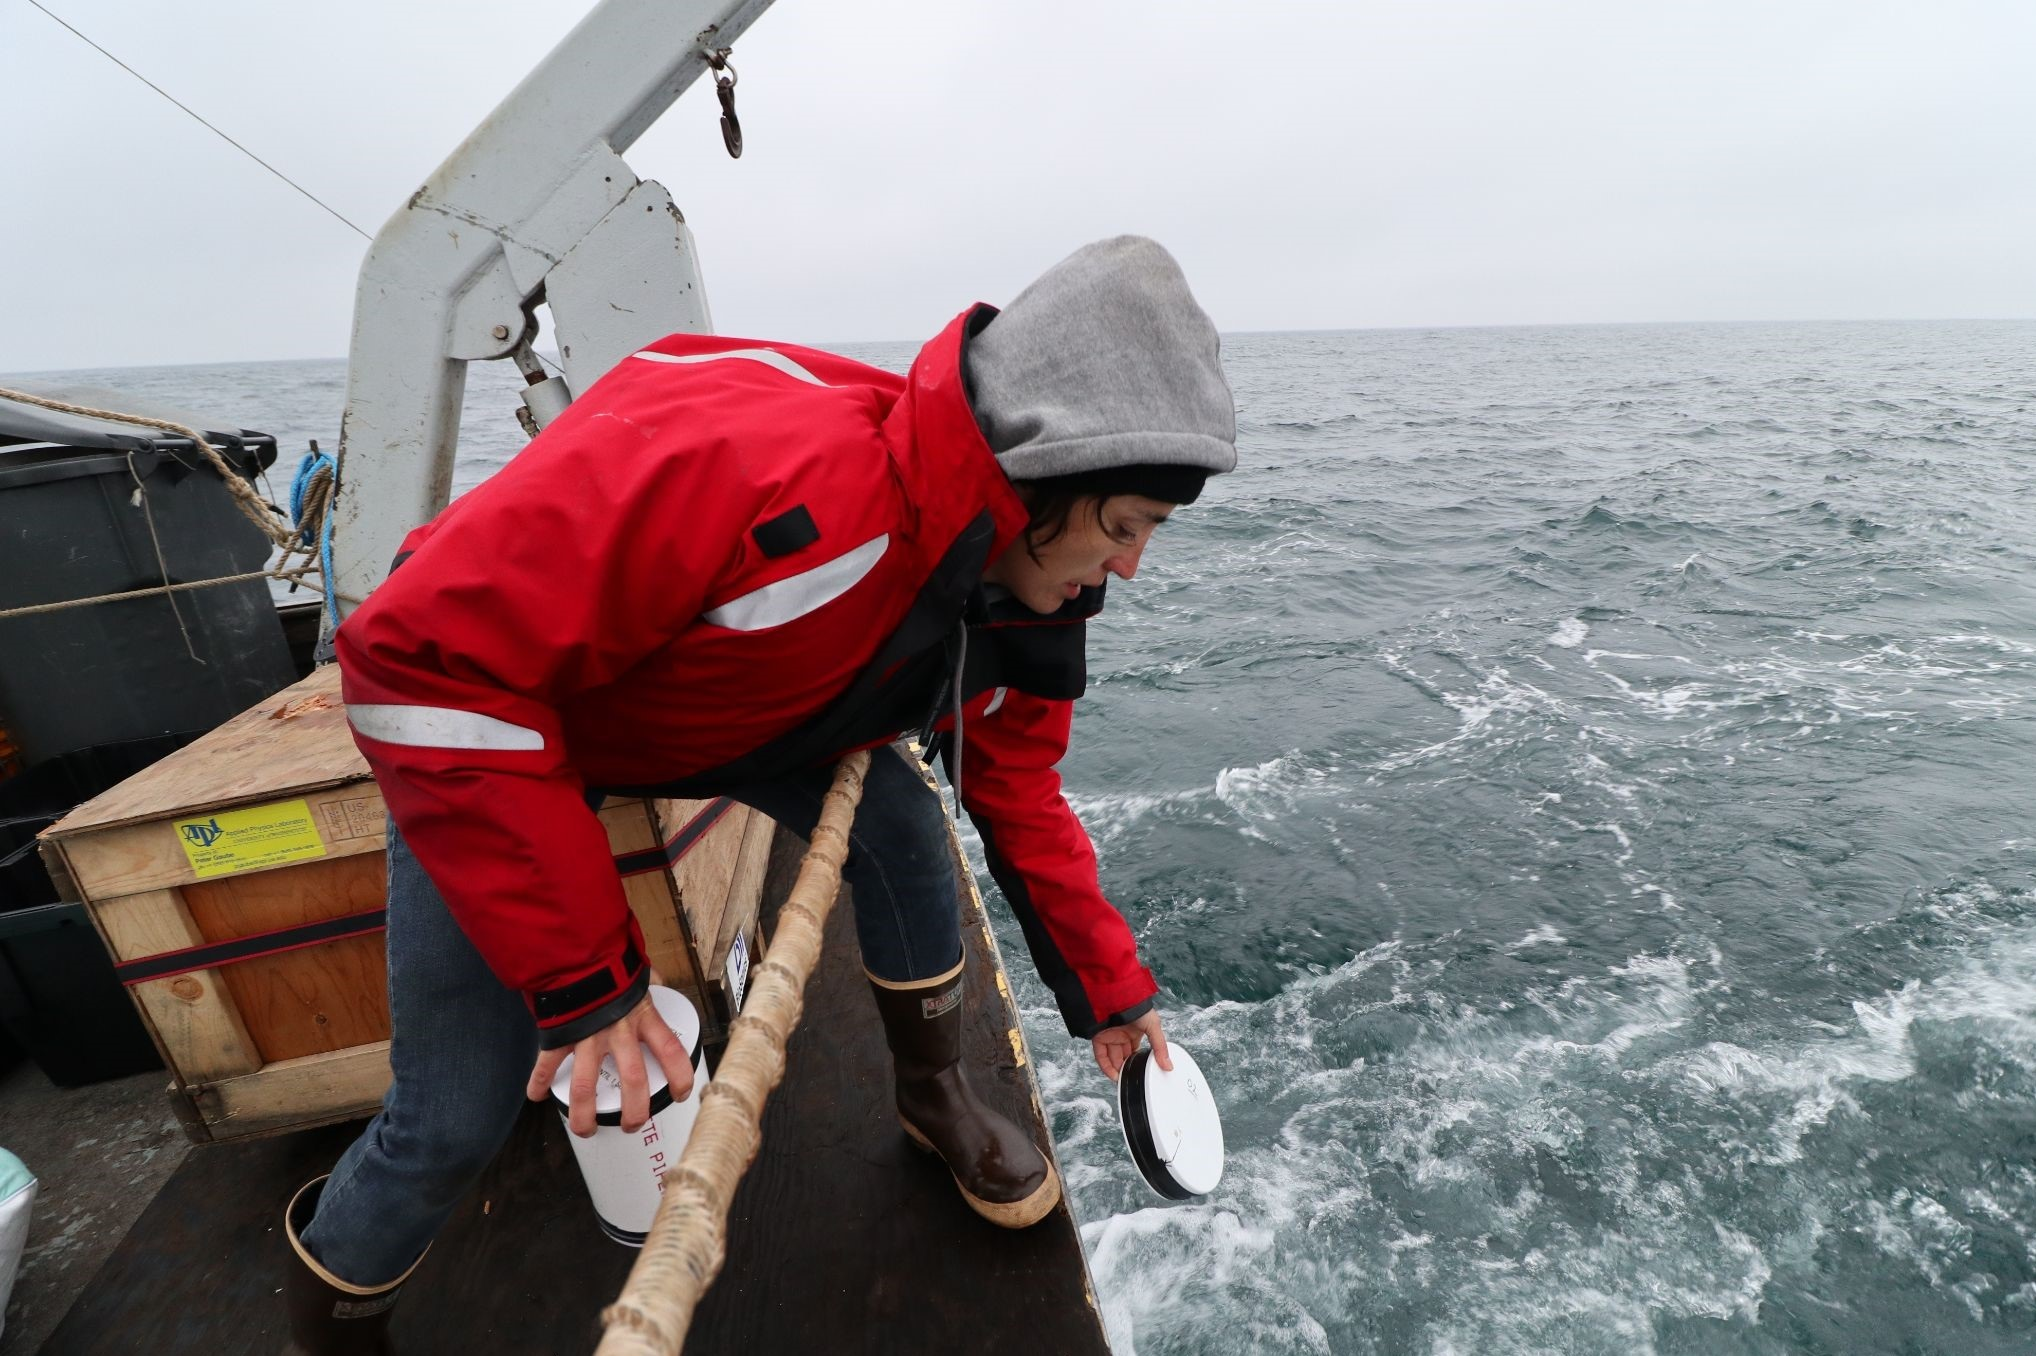 Dr. Kyla Drushka deploys ocean drifters to measure ocean currents at the sea surface.